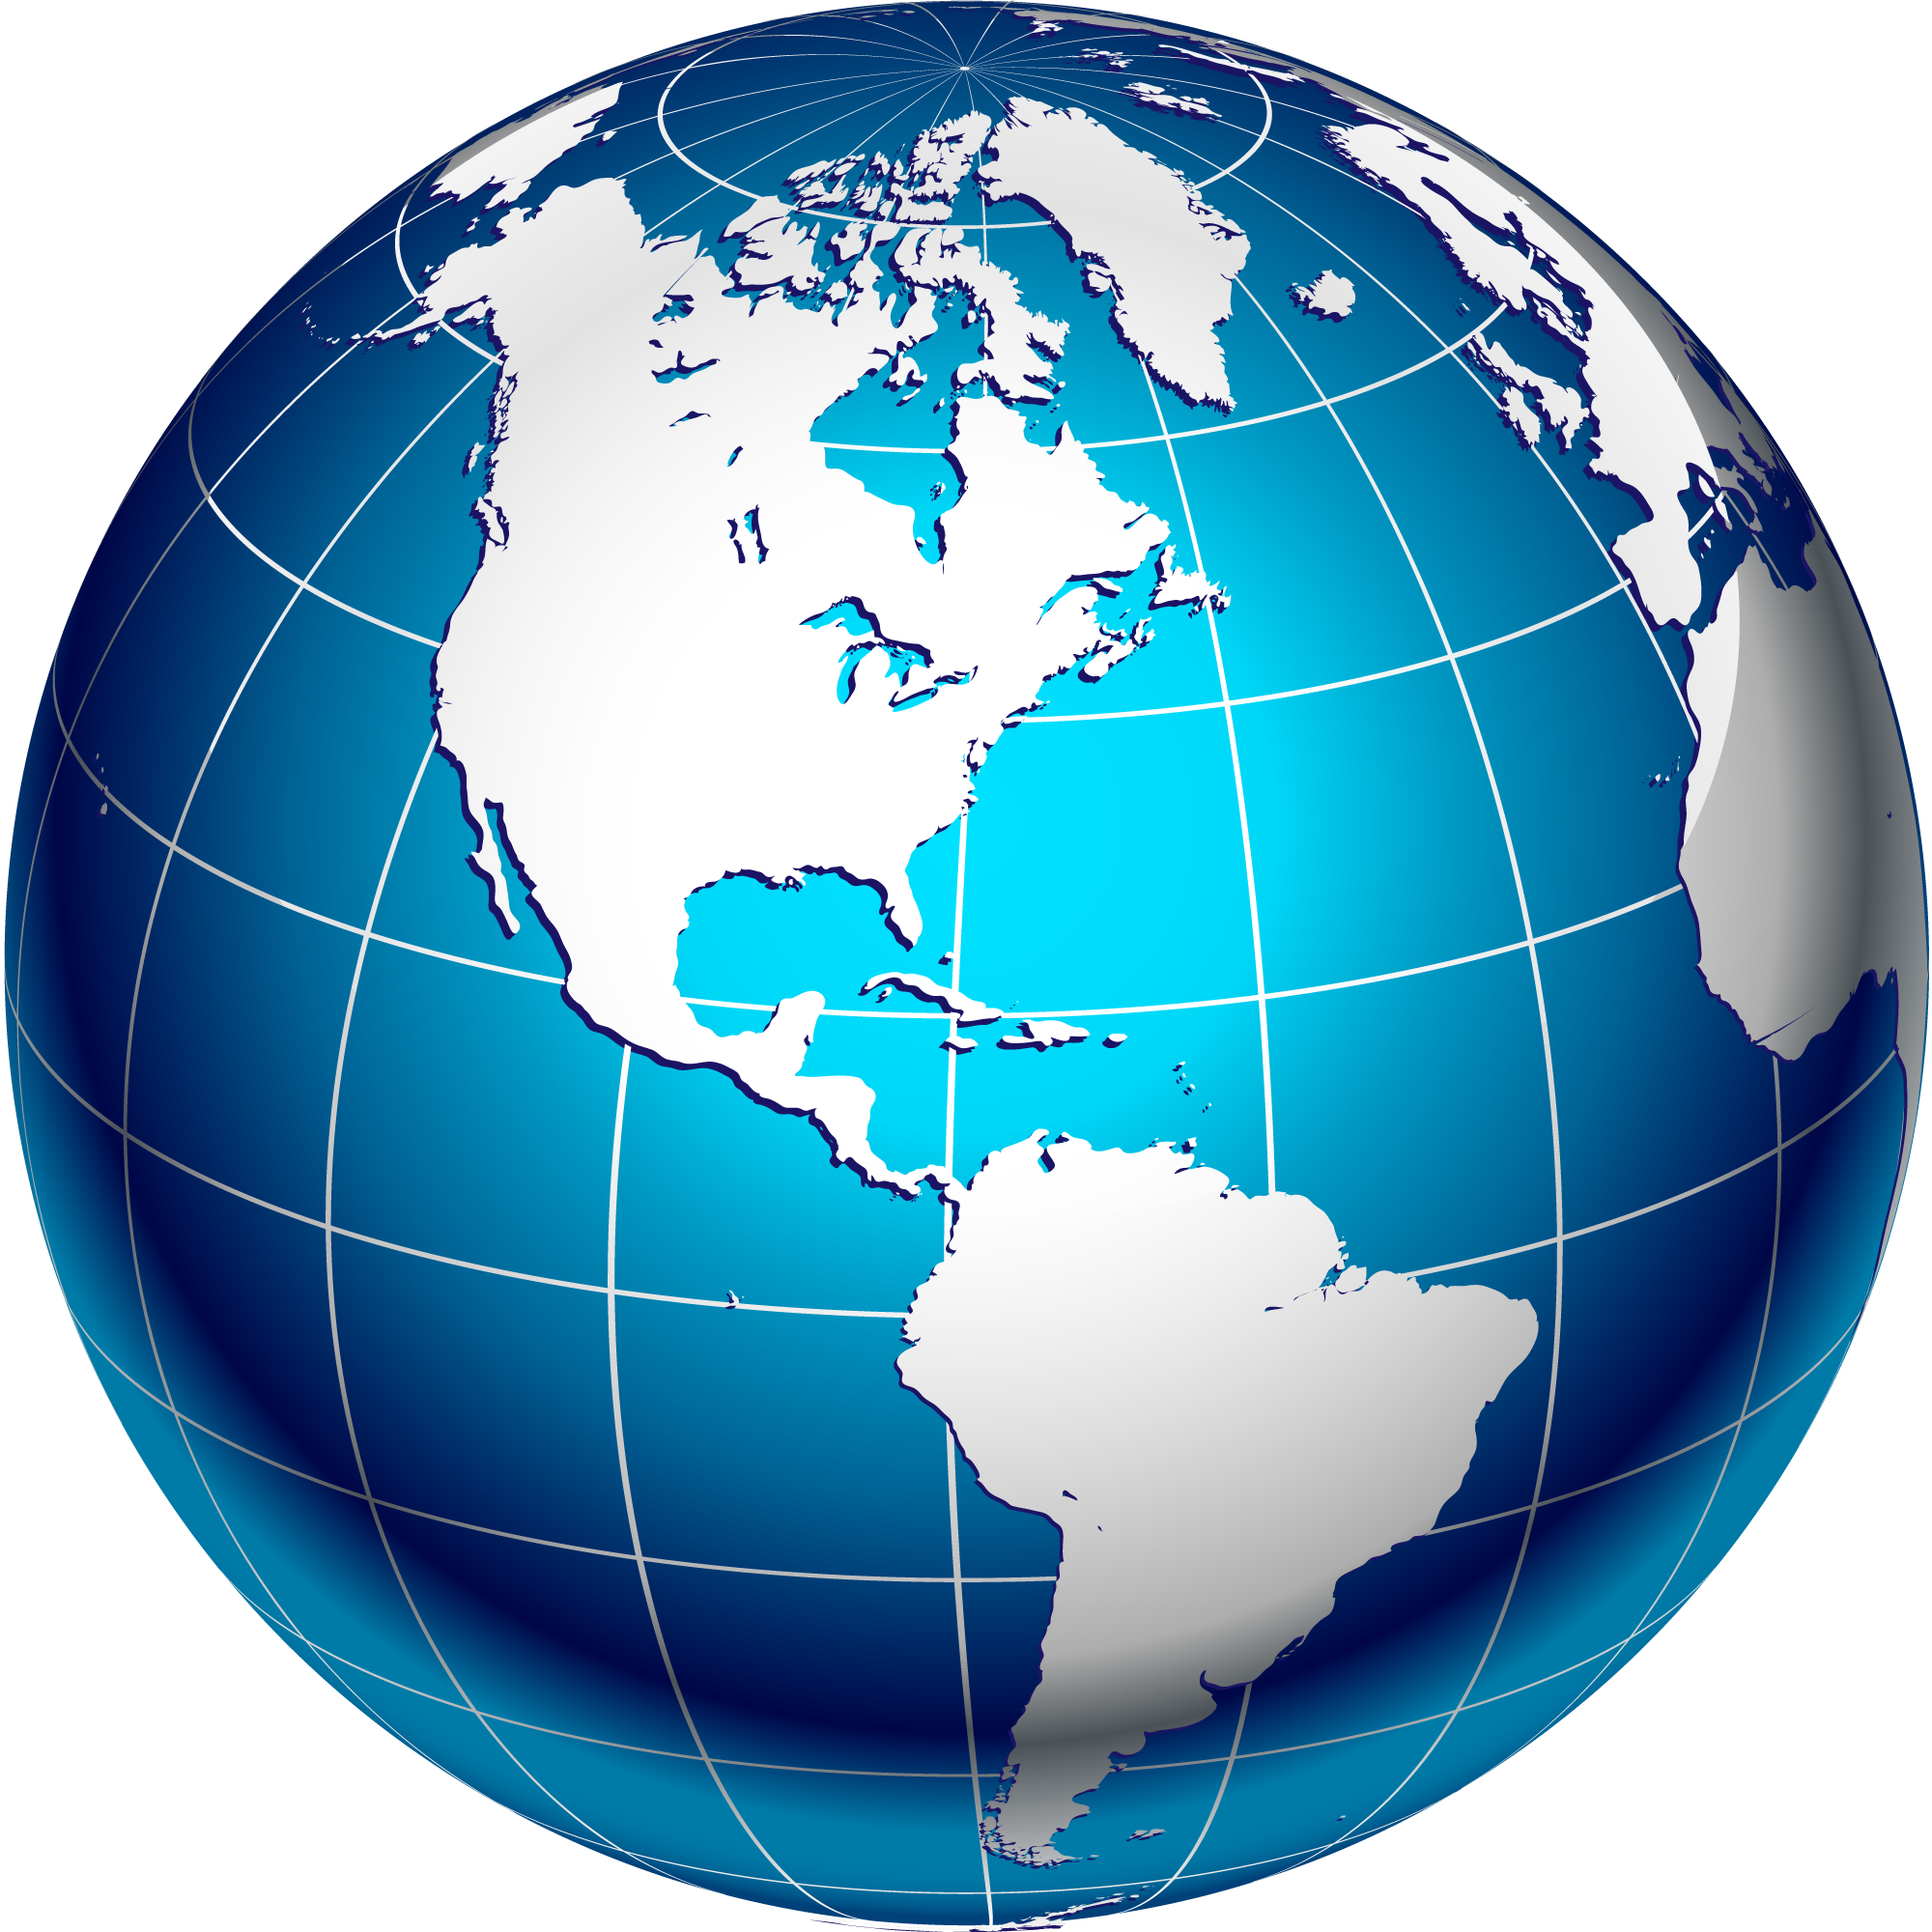 Is Any Of The Villages From The List Actually Good For Backpacking I Am Planning A New Destination Soon Backpacker Travel Bac Cartoon Globe Png Photo Globe